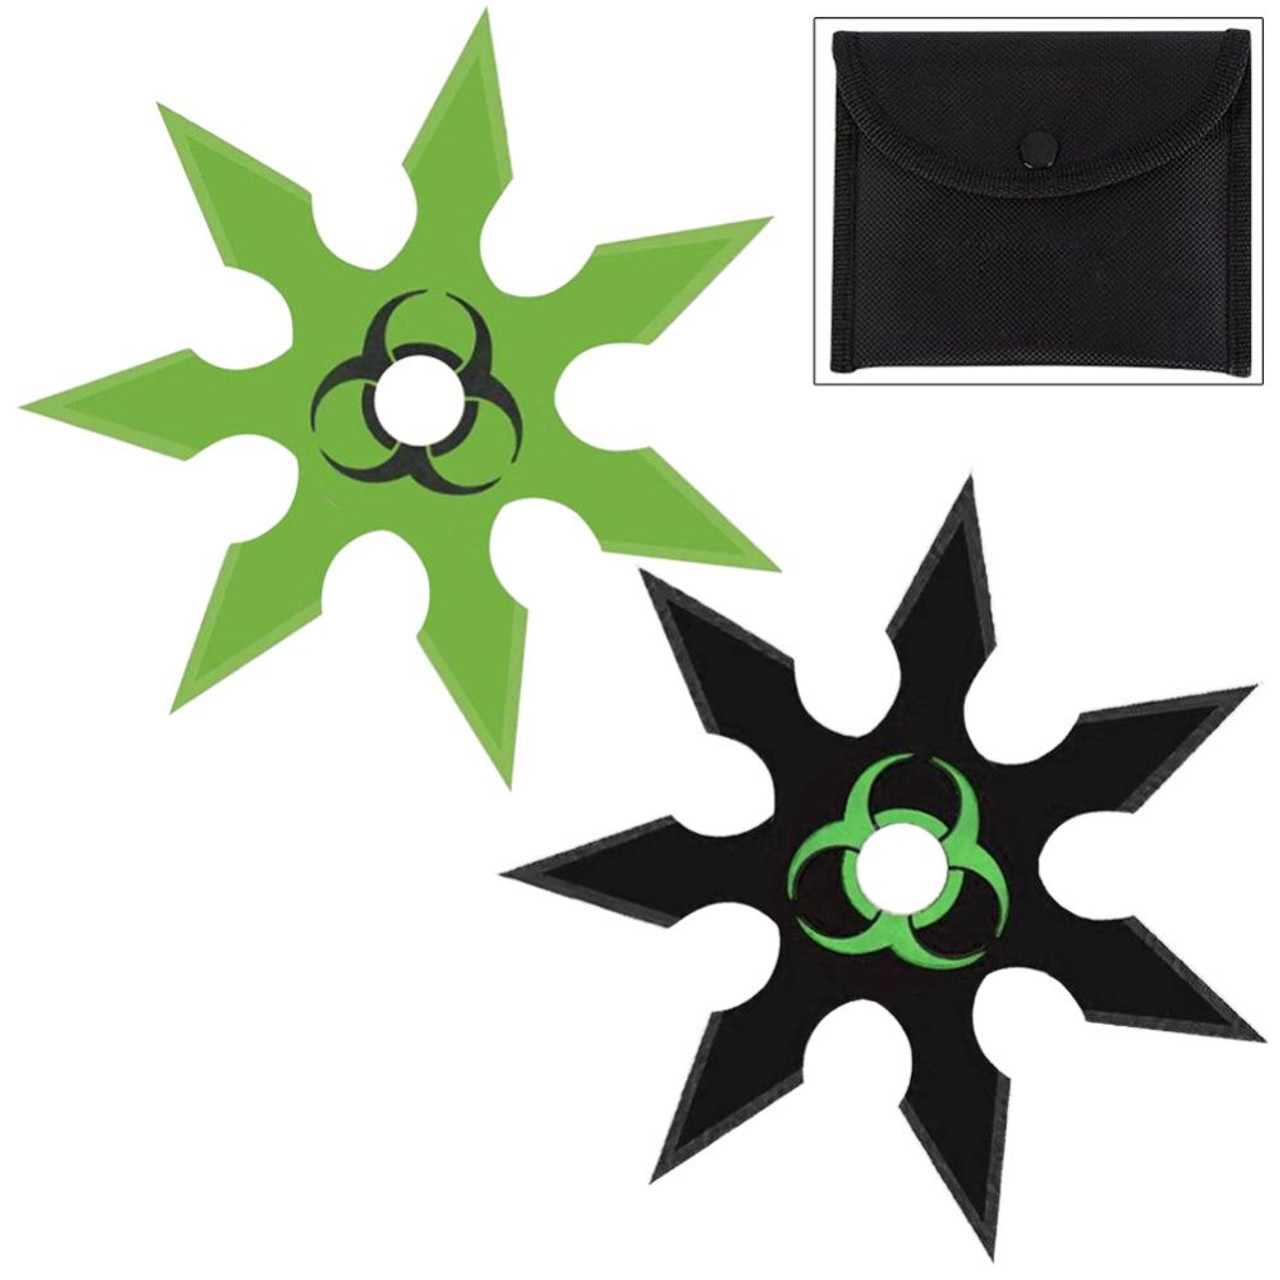 Extreme Toxic Death 7 Point Heavy Duty 2 Piece Throwing Star Set